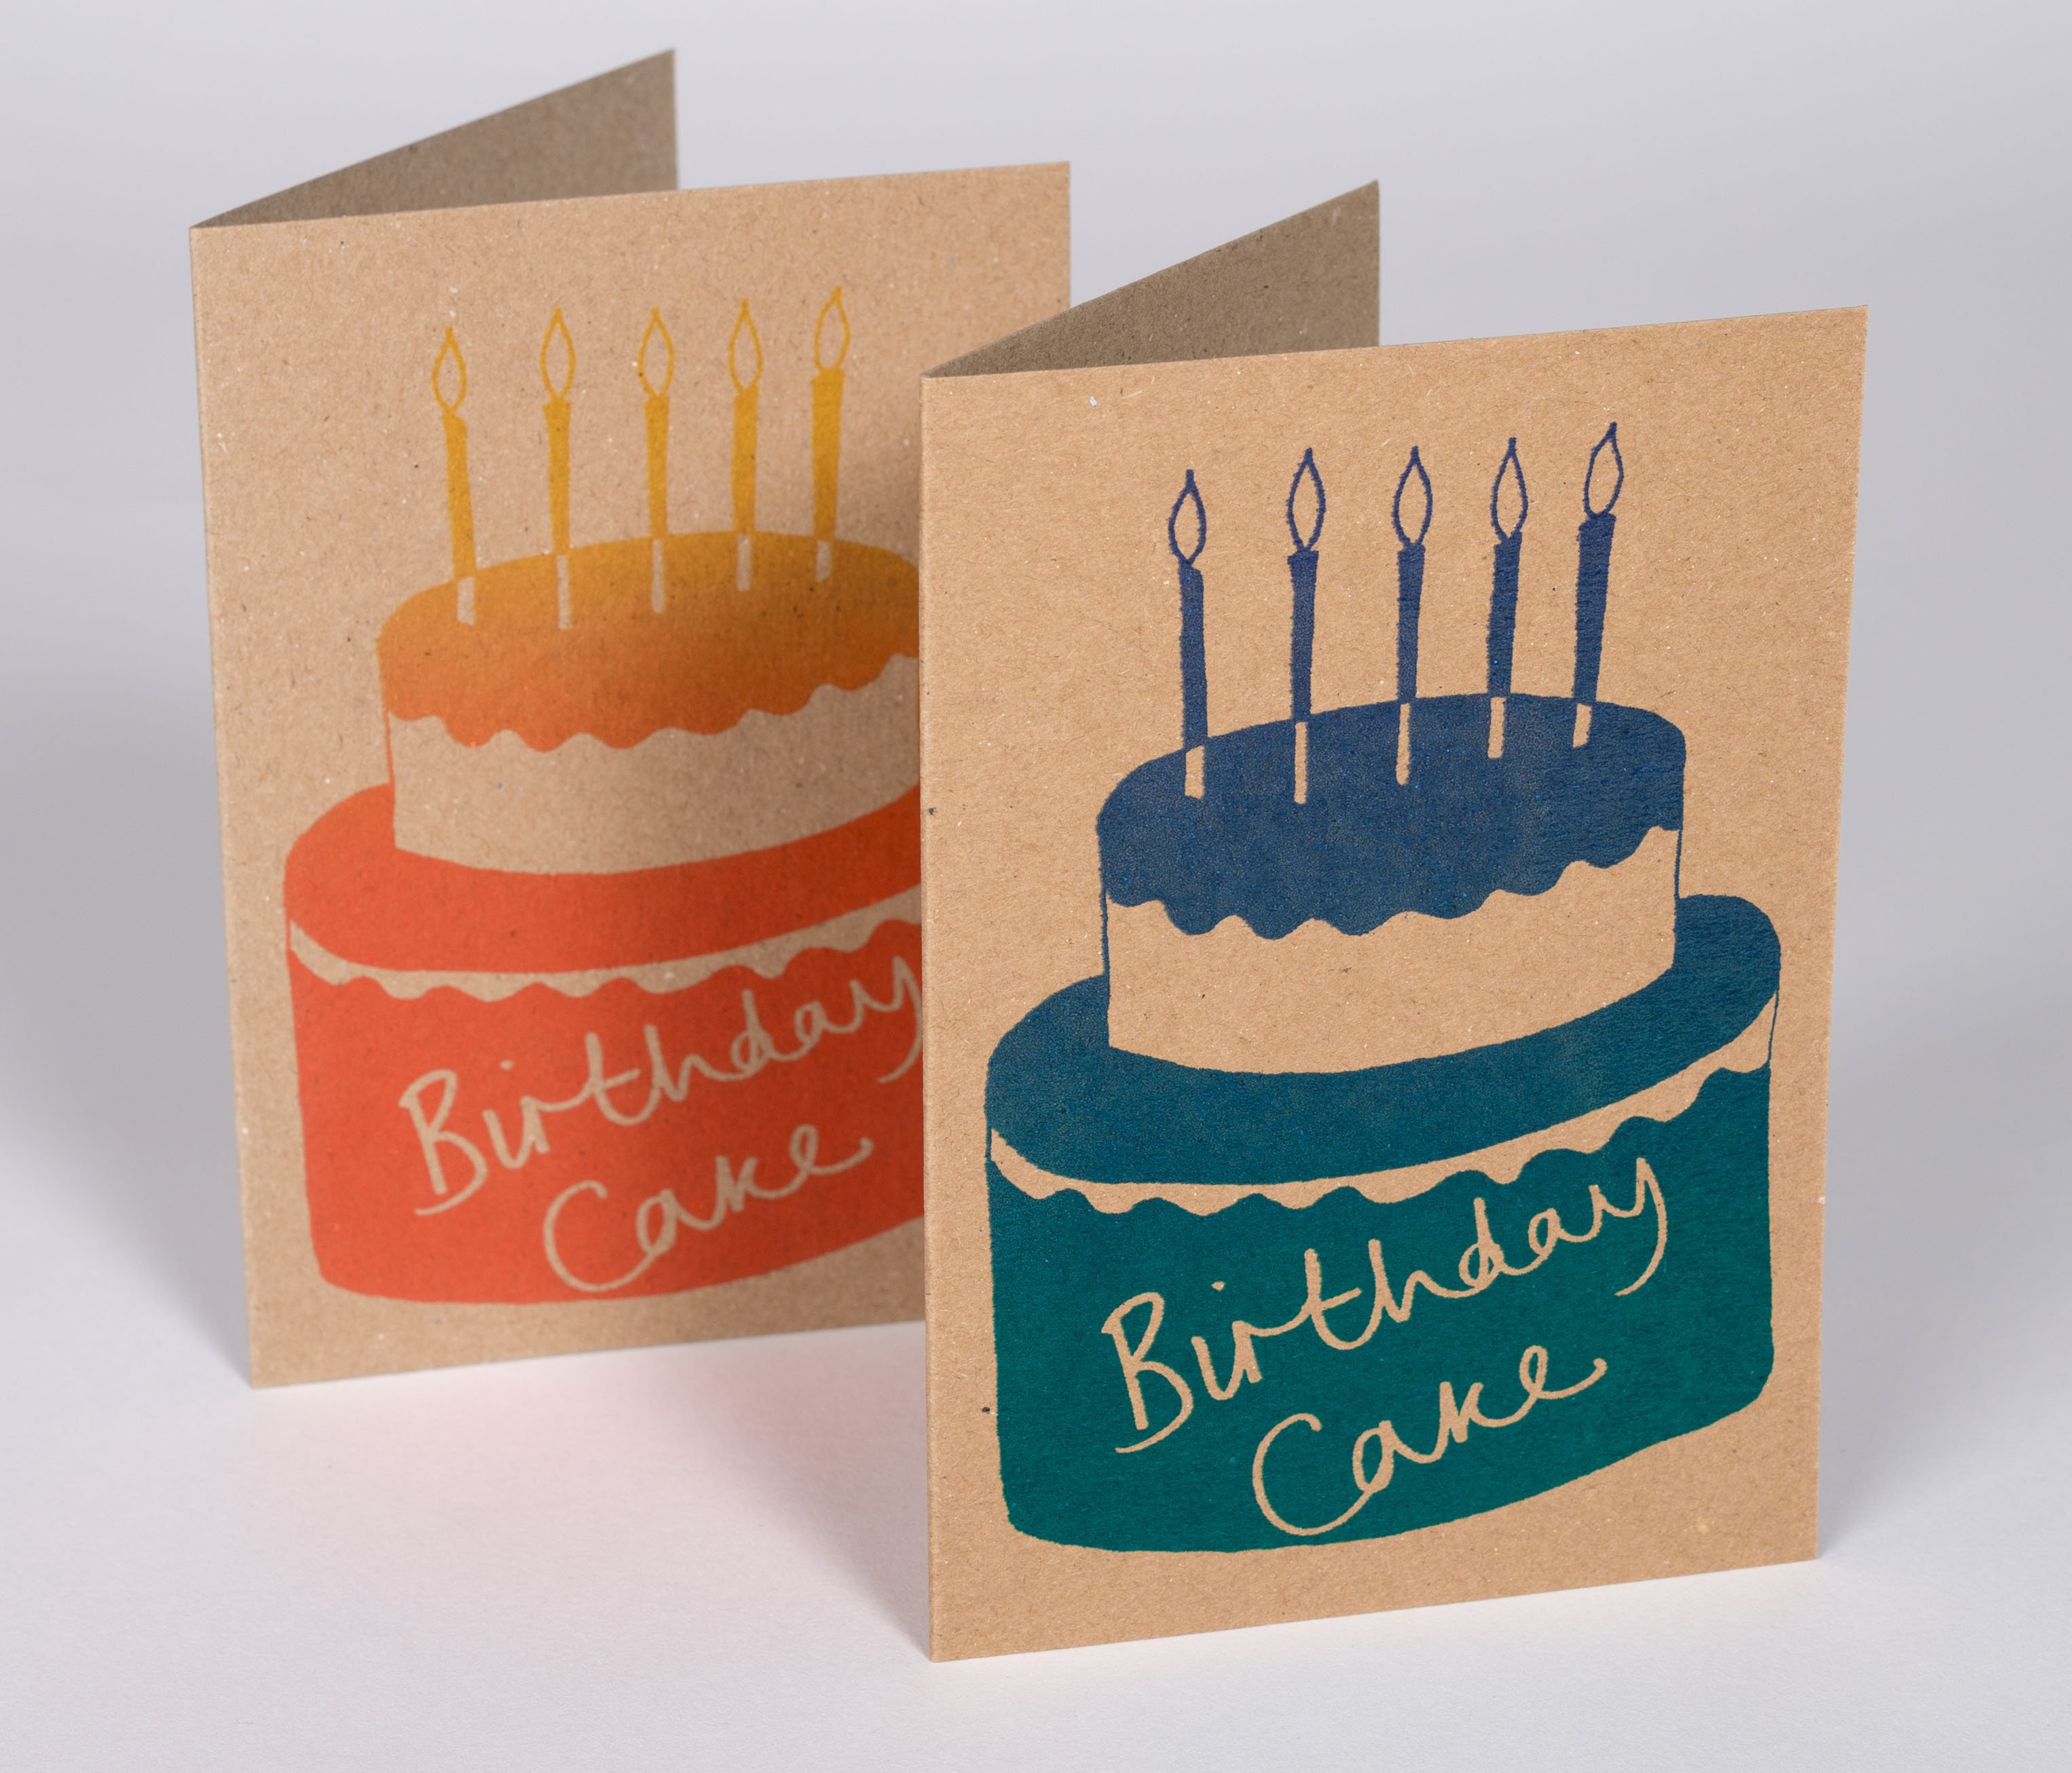 Birthday cake greeting card kirstie williams designer maker home greeting cards birthday cake greeting card 260 m4hsunfo